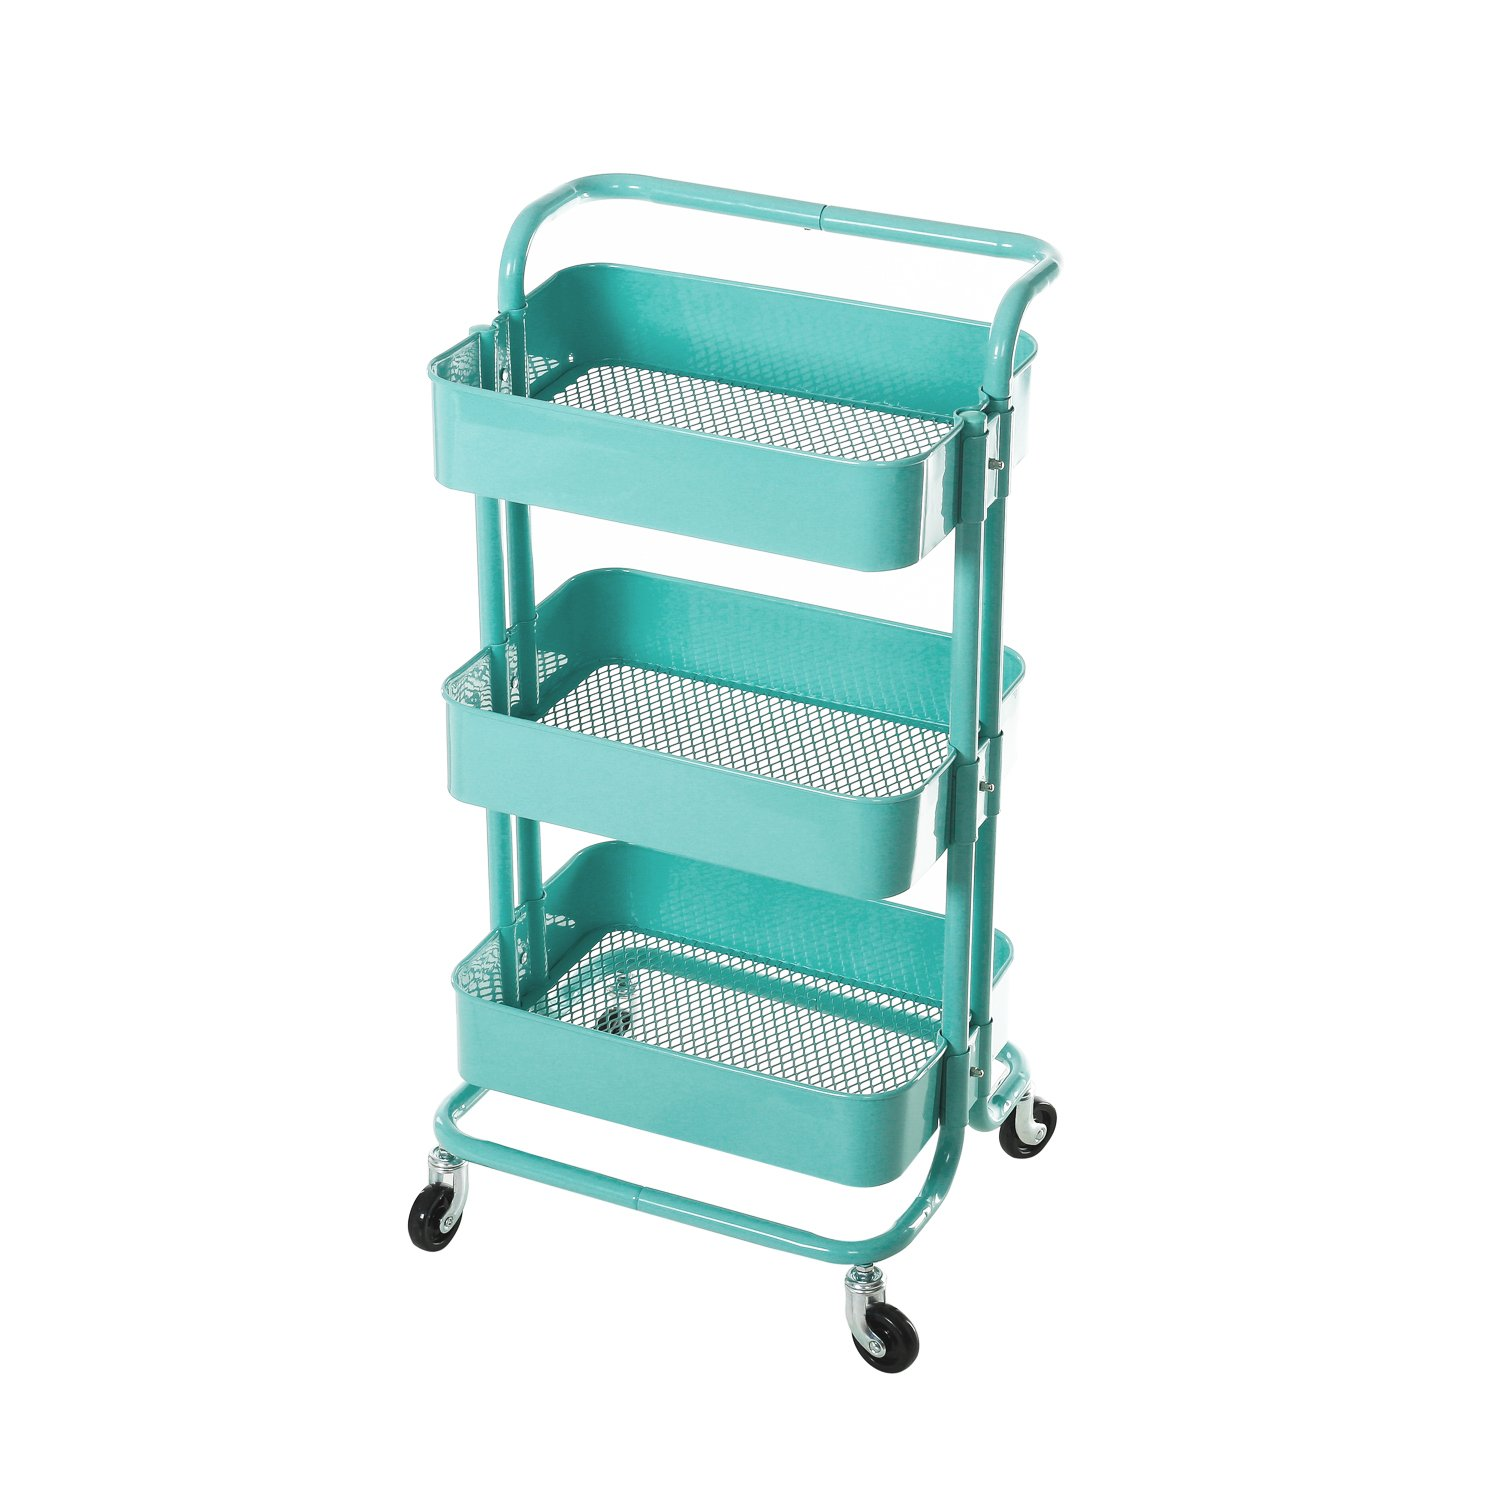 HollyHOME 3-Tier Metal Utility Service Cart Rolling Storage Shelves with Handles, Blue Storage Utility Cart by HollyHOME